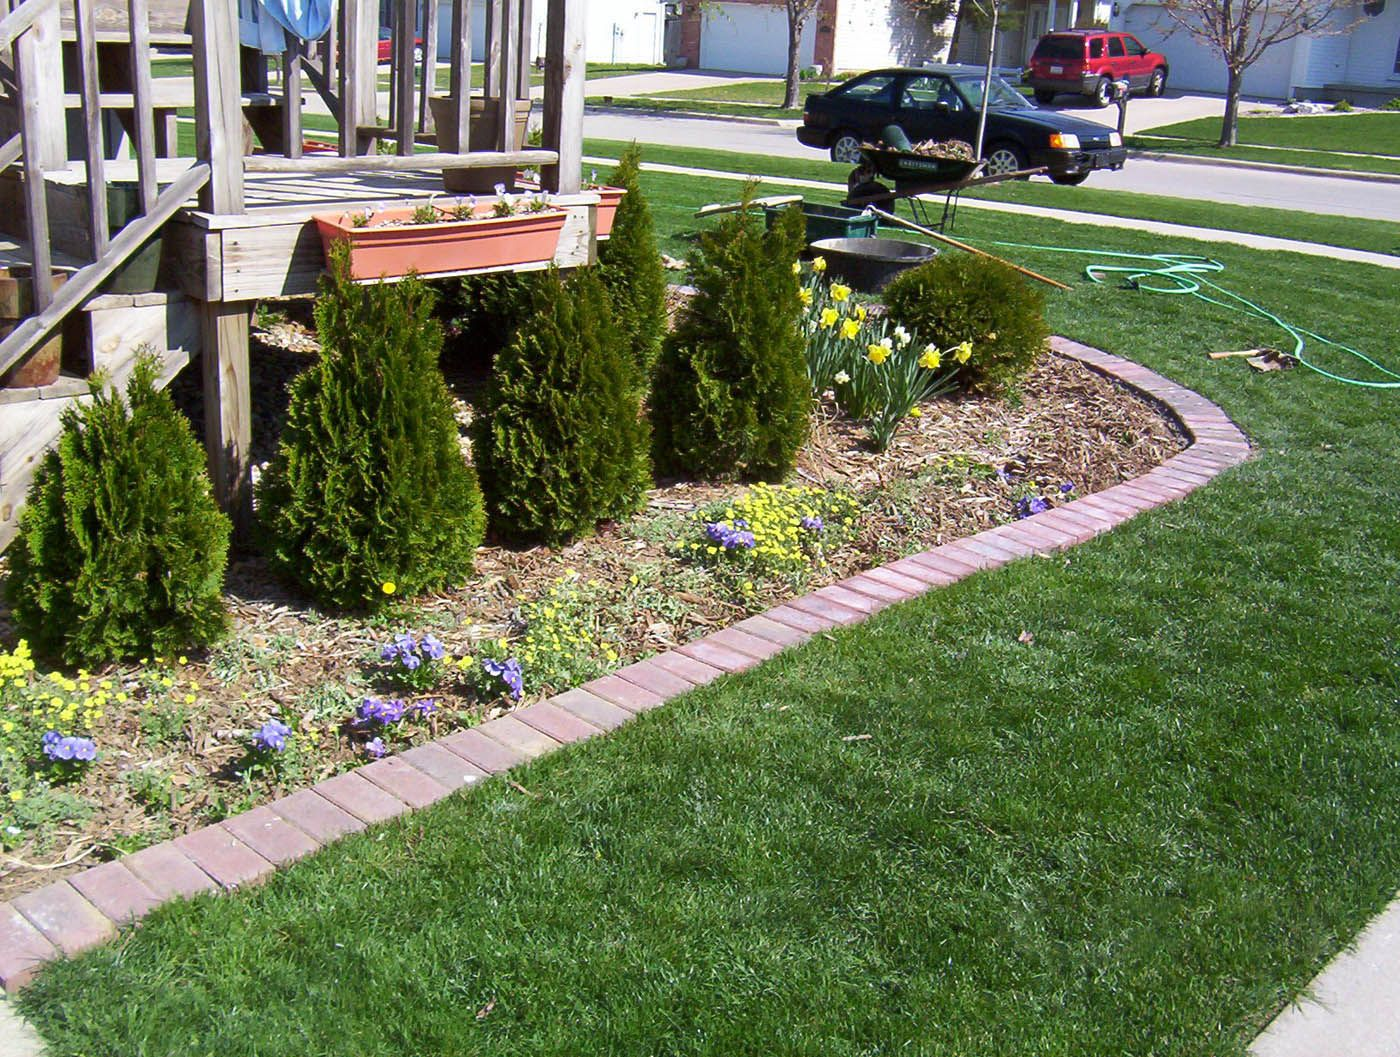 Simple flower bed edging design ideas lawn care for Flower bed edging ideas